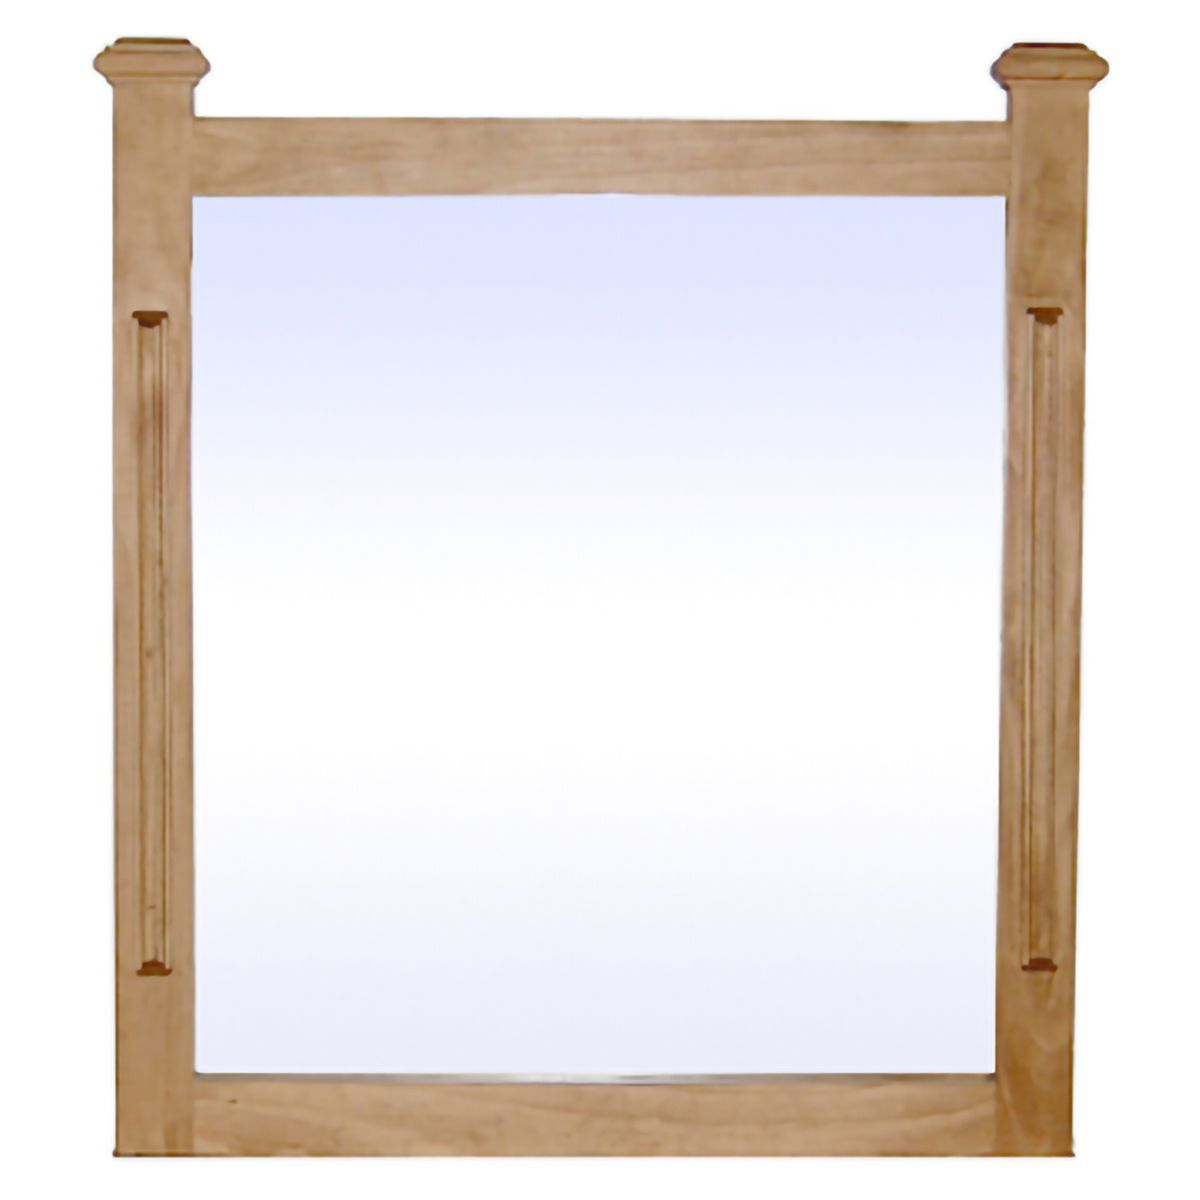 Farmhouse Pine Mirror - Natural Light